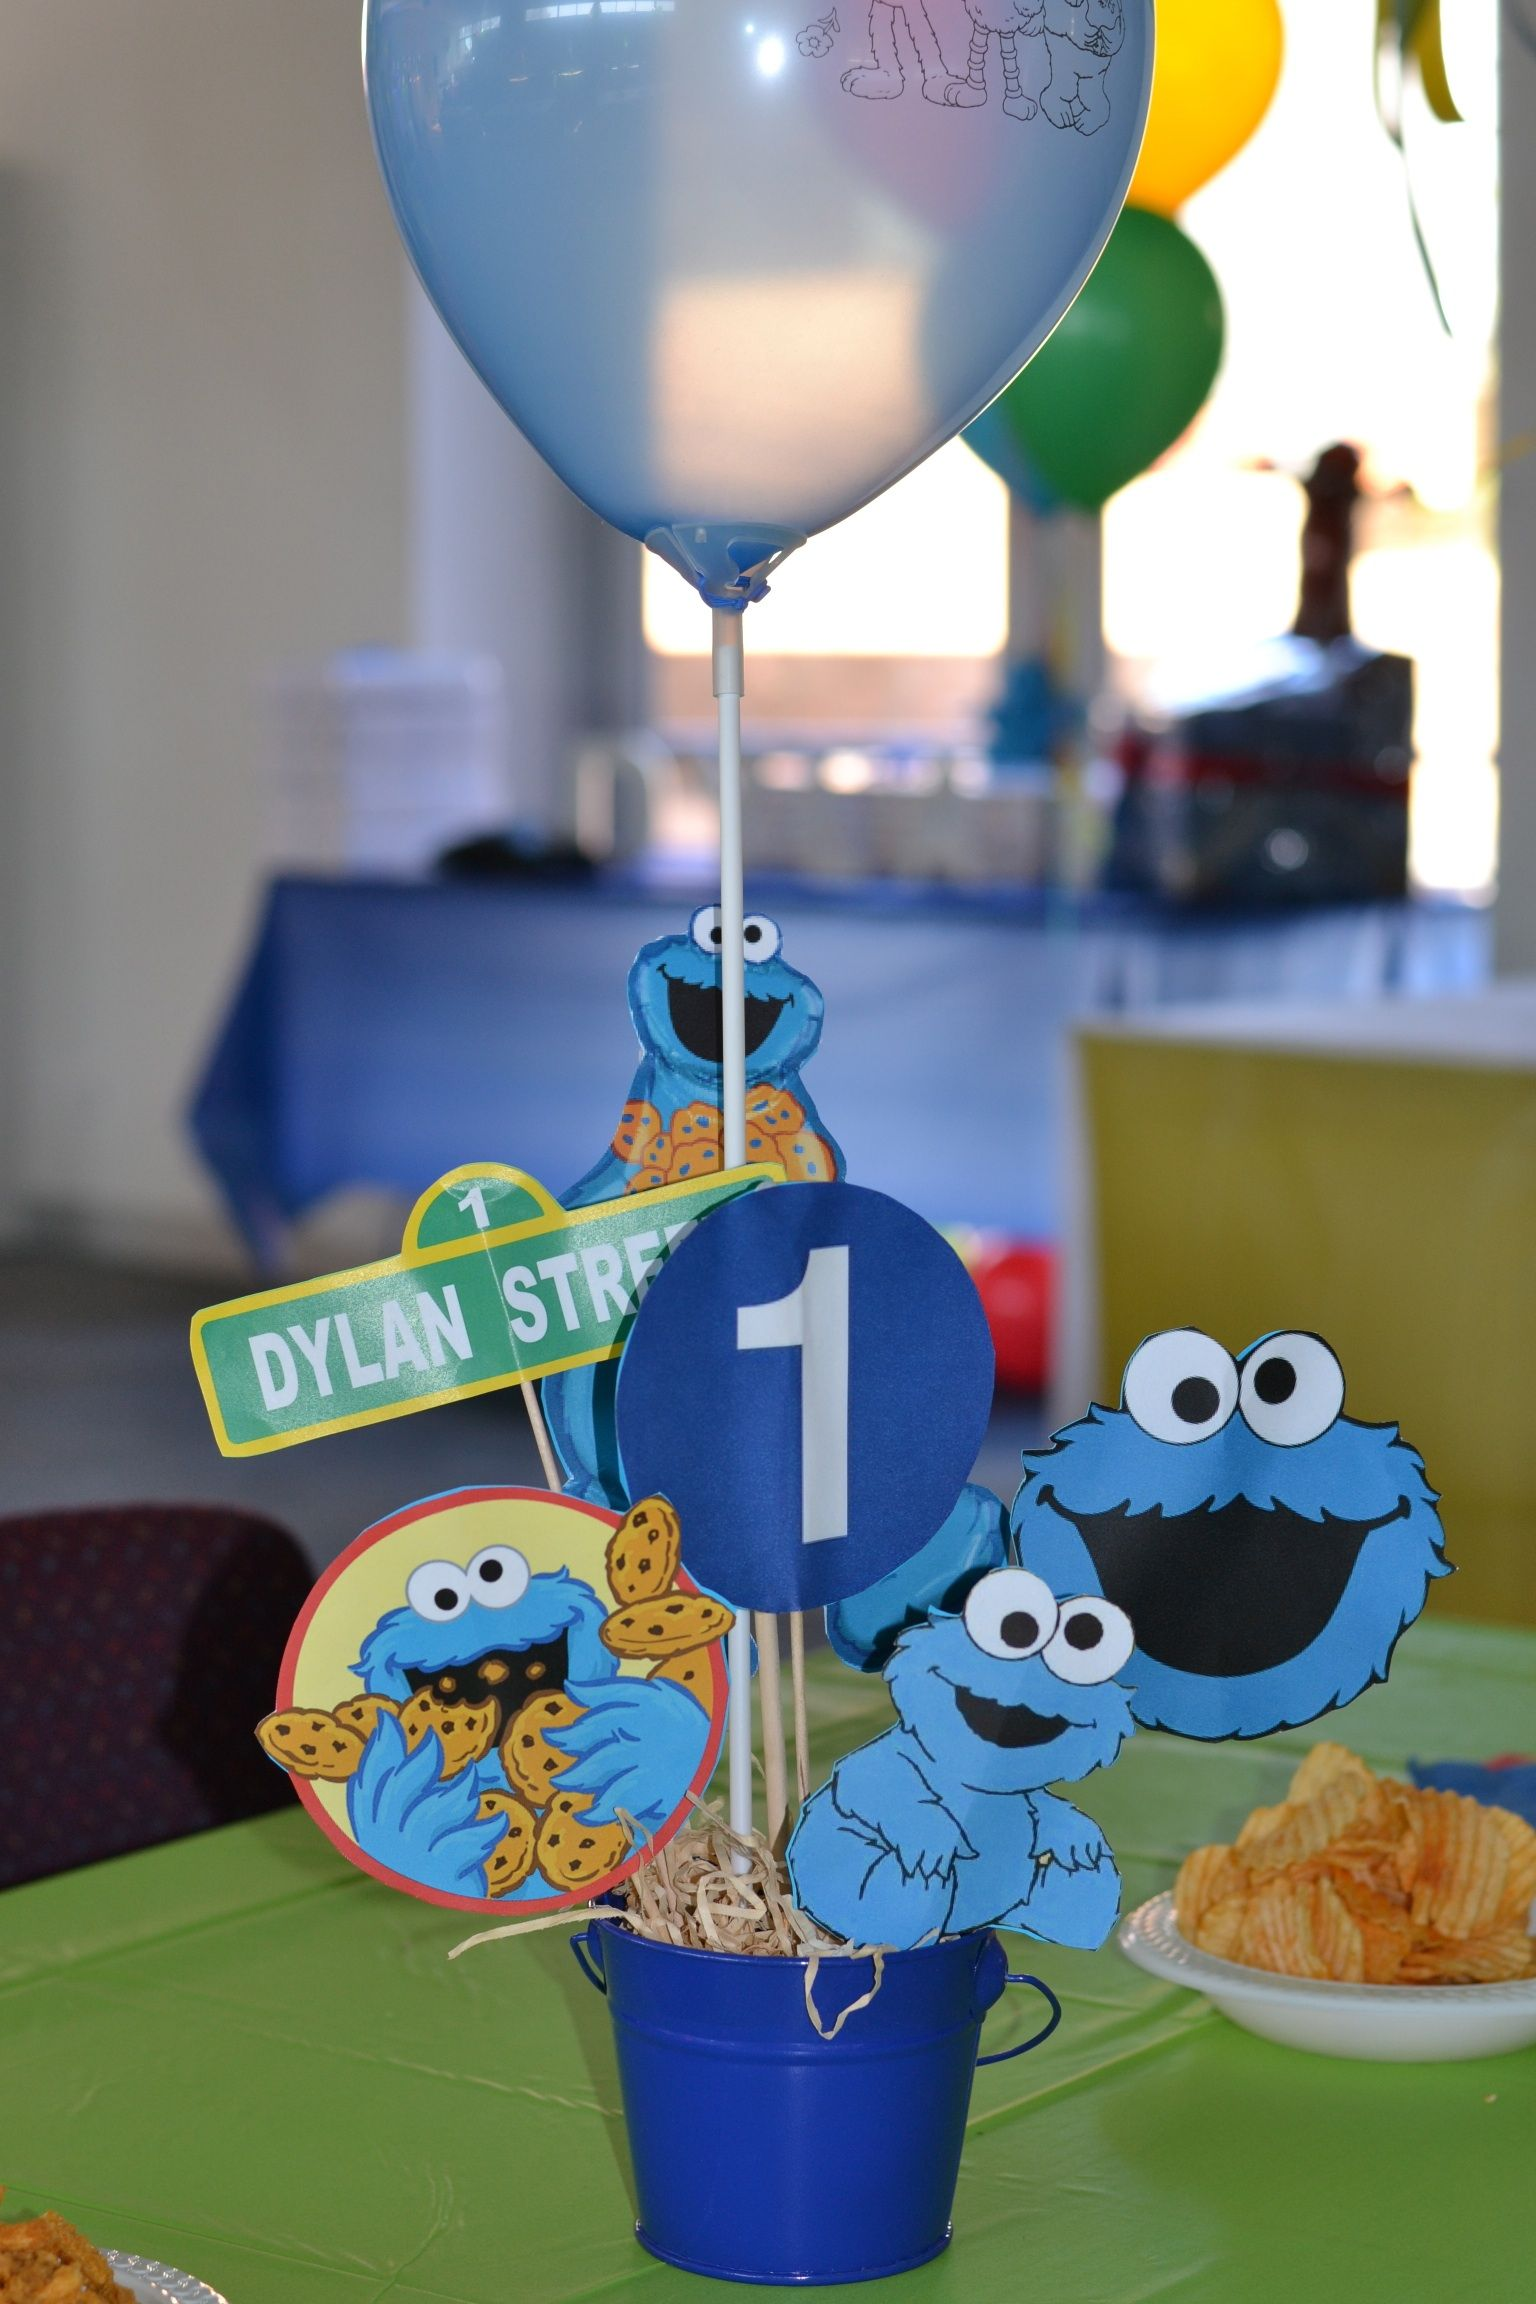 Cookie Monster Table decoration / center piece made by @BelindaRooff & TheRetroInc on Etsy | Pinterest | Cookie monster Table decorations ...